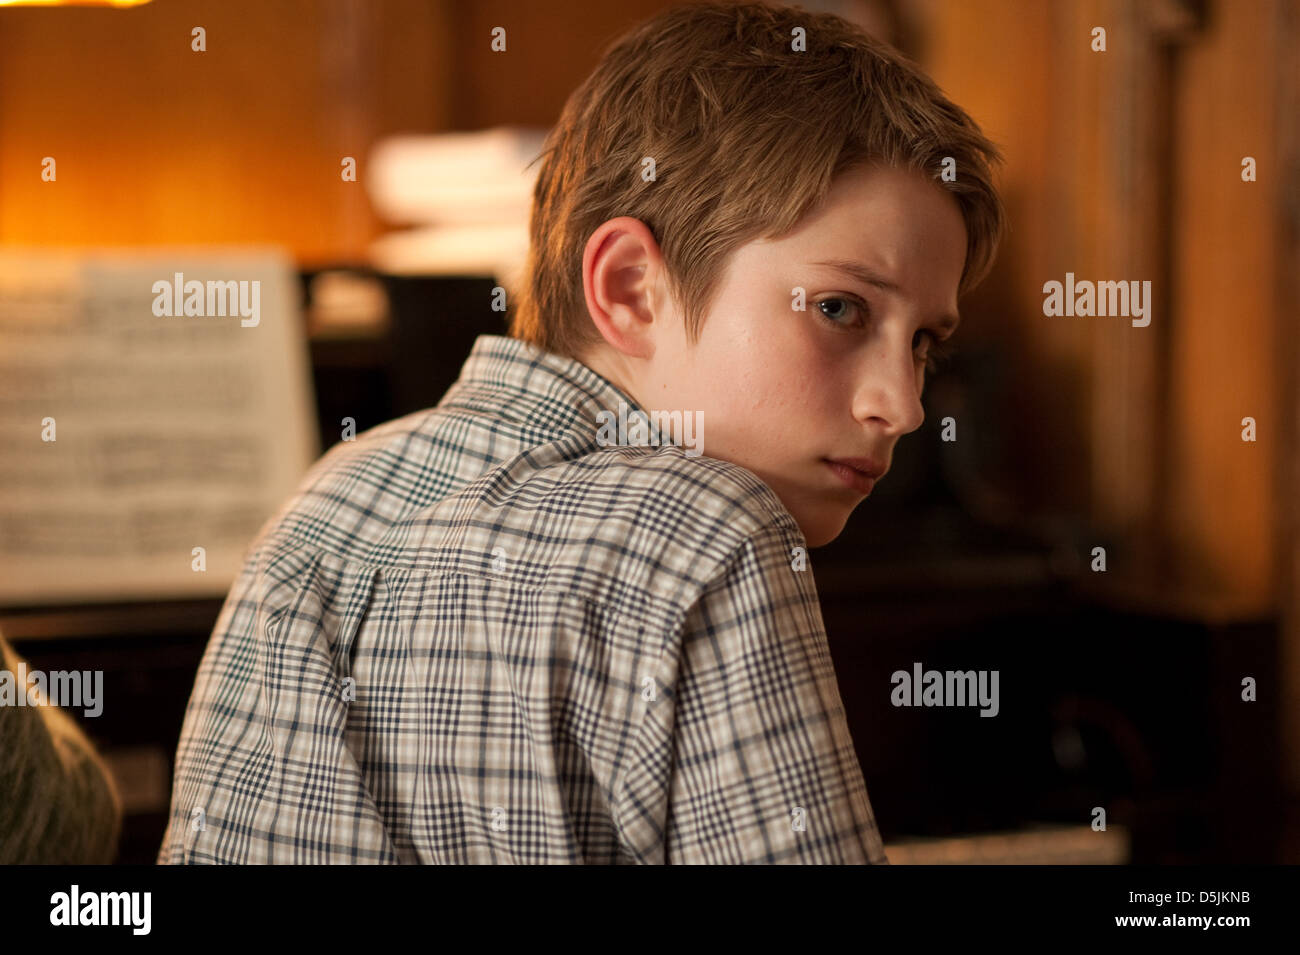 THOMAS HORN EXTREMELY LOUD AND INCREDIBLY CLOSE (2011) - Stock Image